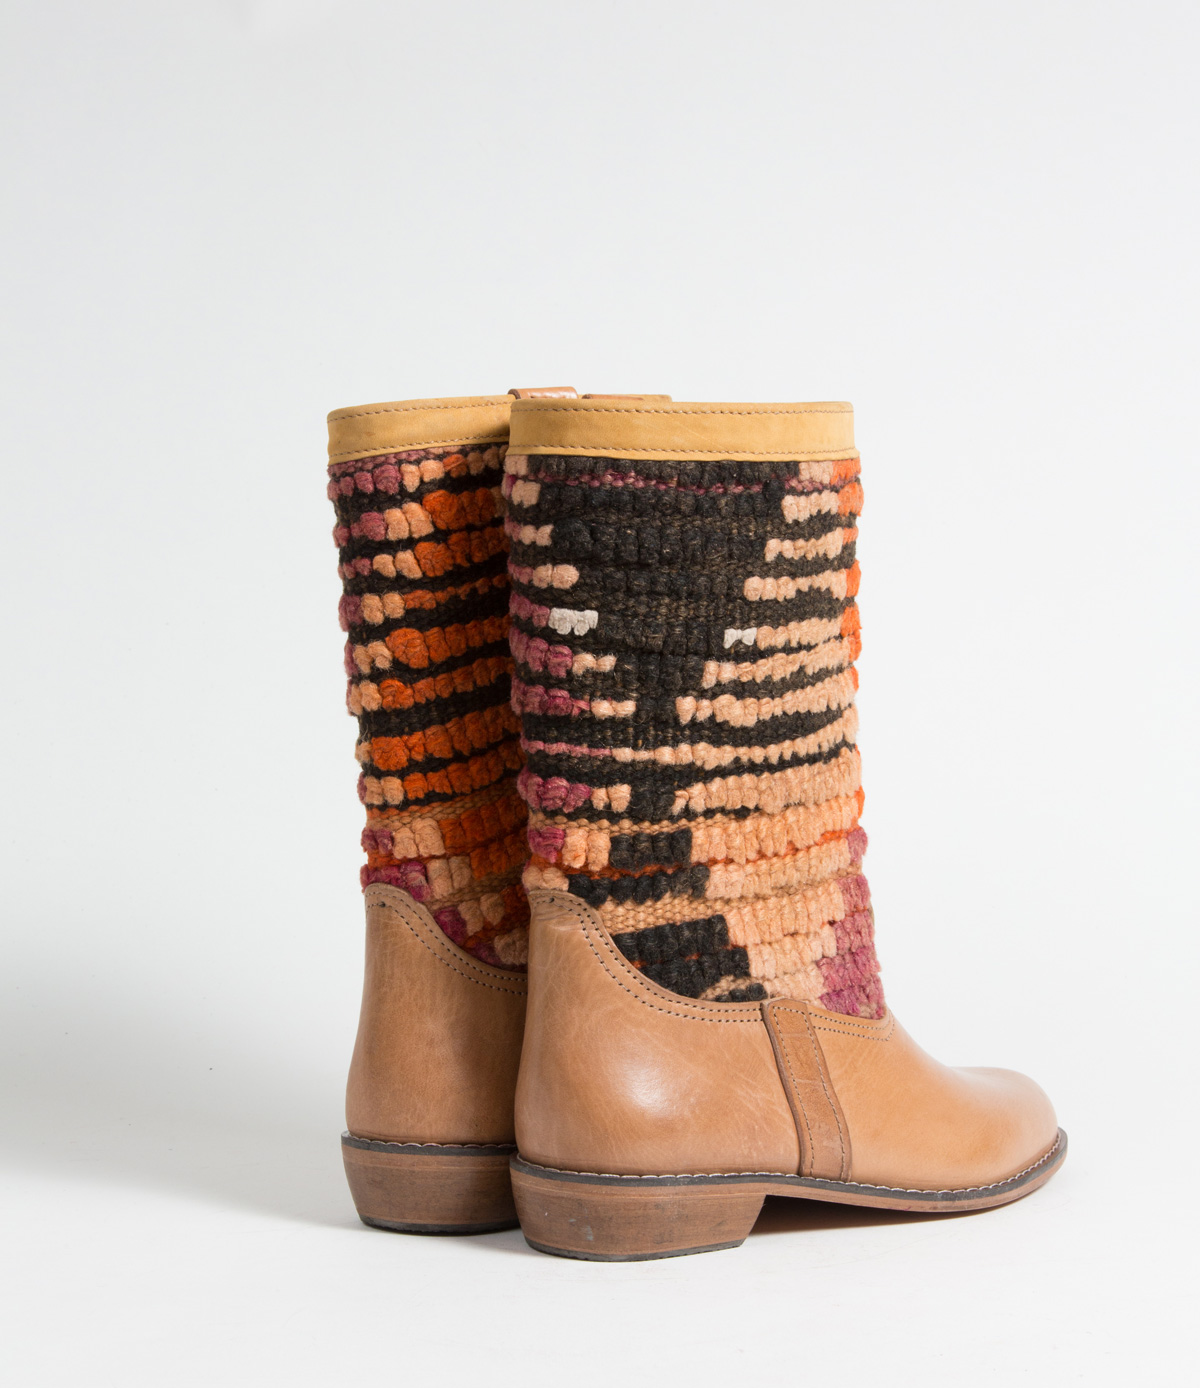 Bottes Kilim cuir mababouche artisanales (Réf. GL5-41)